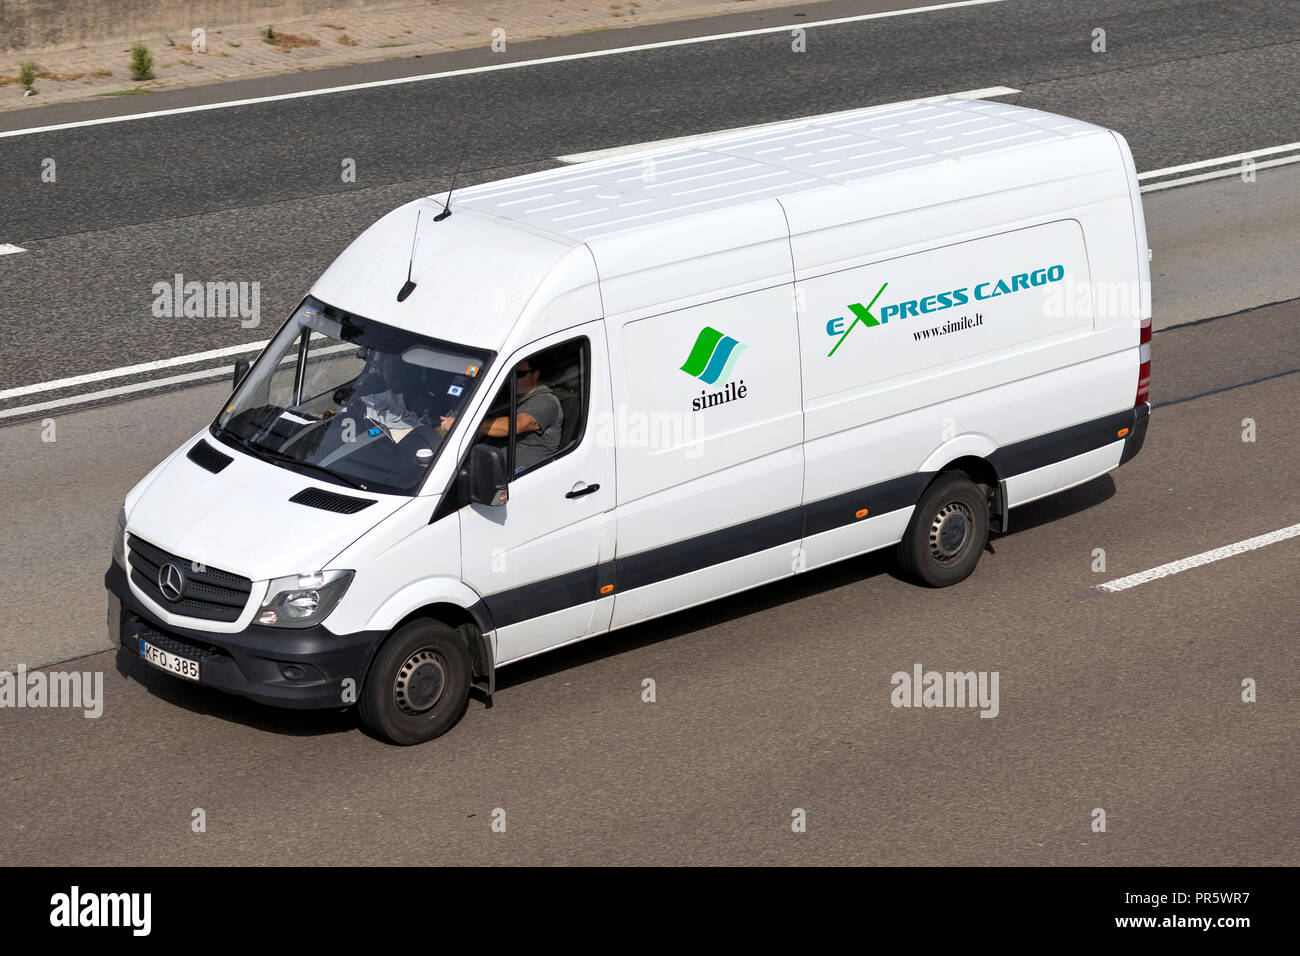 Simile van on motorway. Simile UAB offers express cargo door-to-door delivery, transportation and logistics services using vehicles up to 3.5 tons. - Stock Image